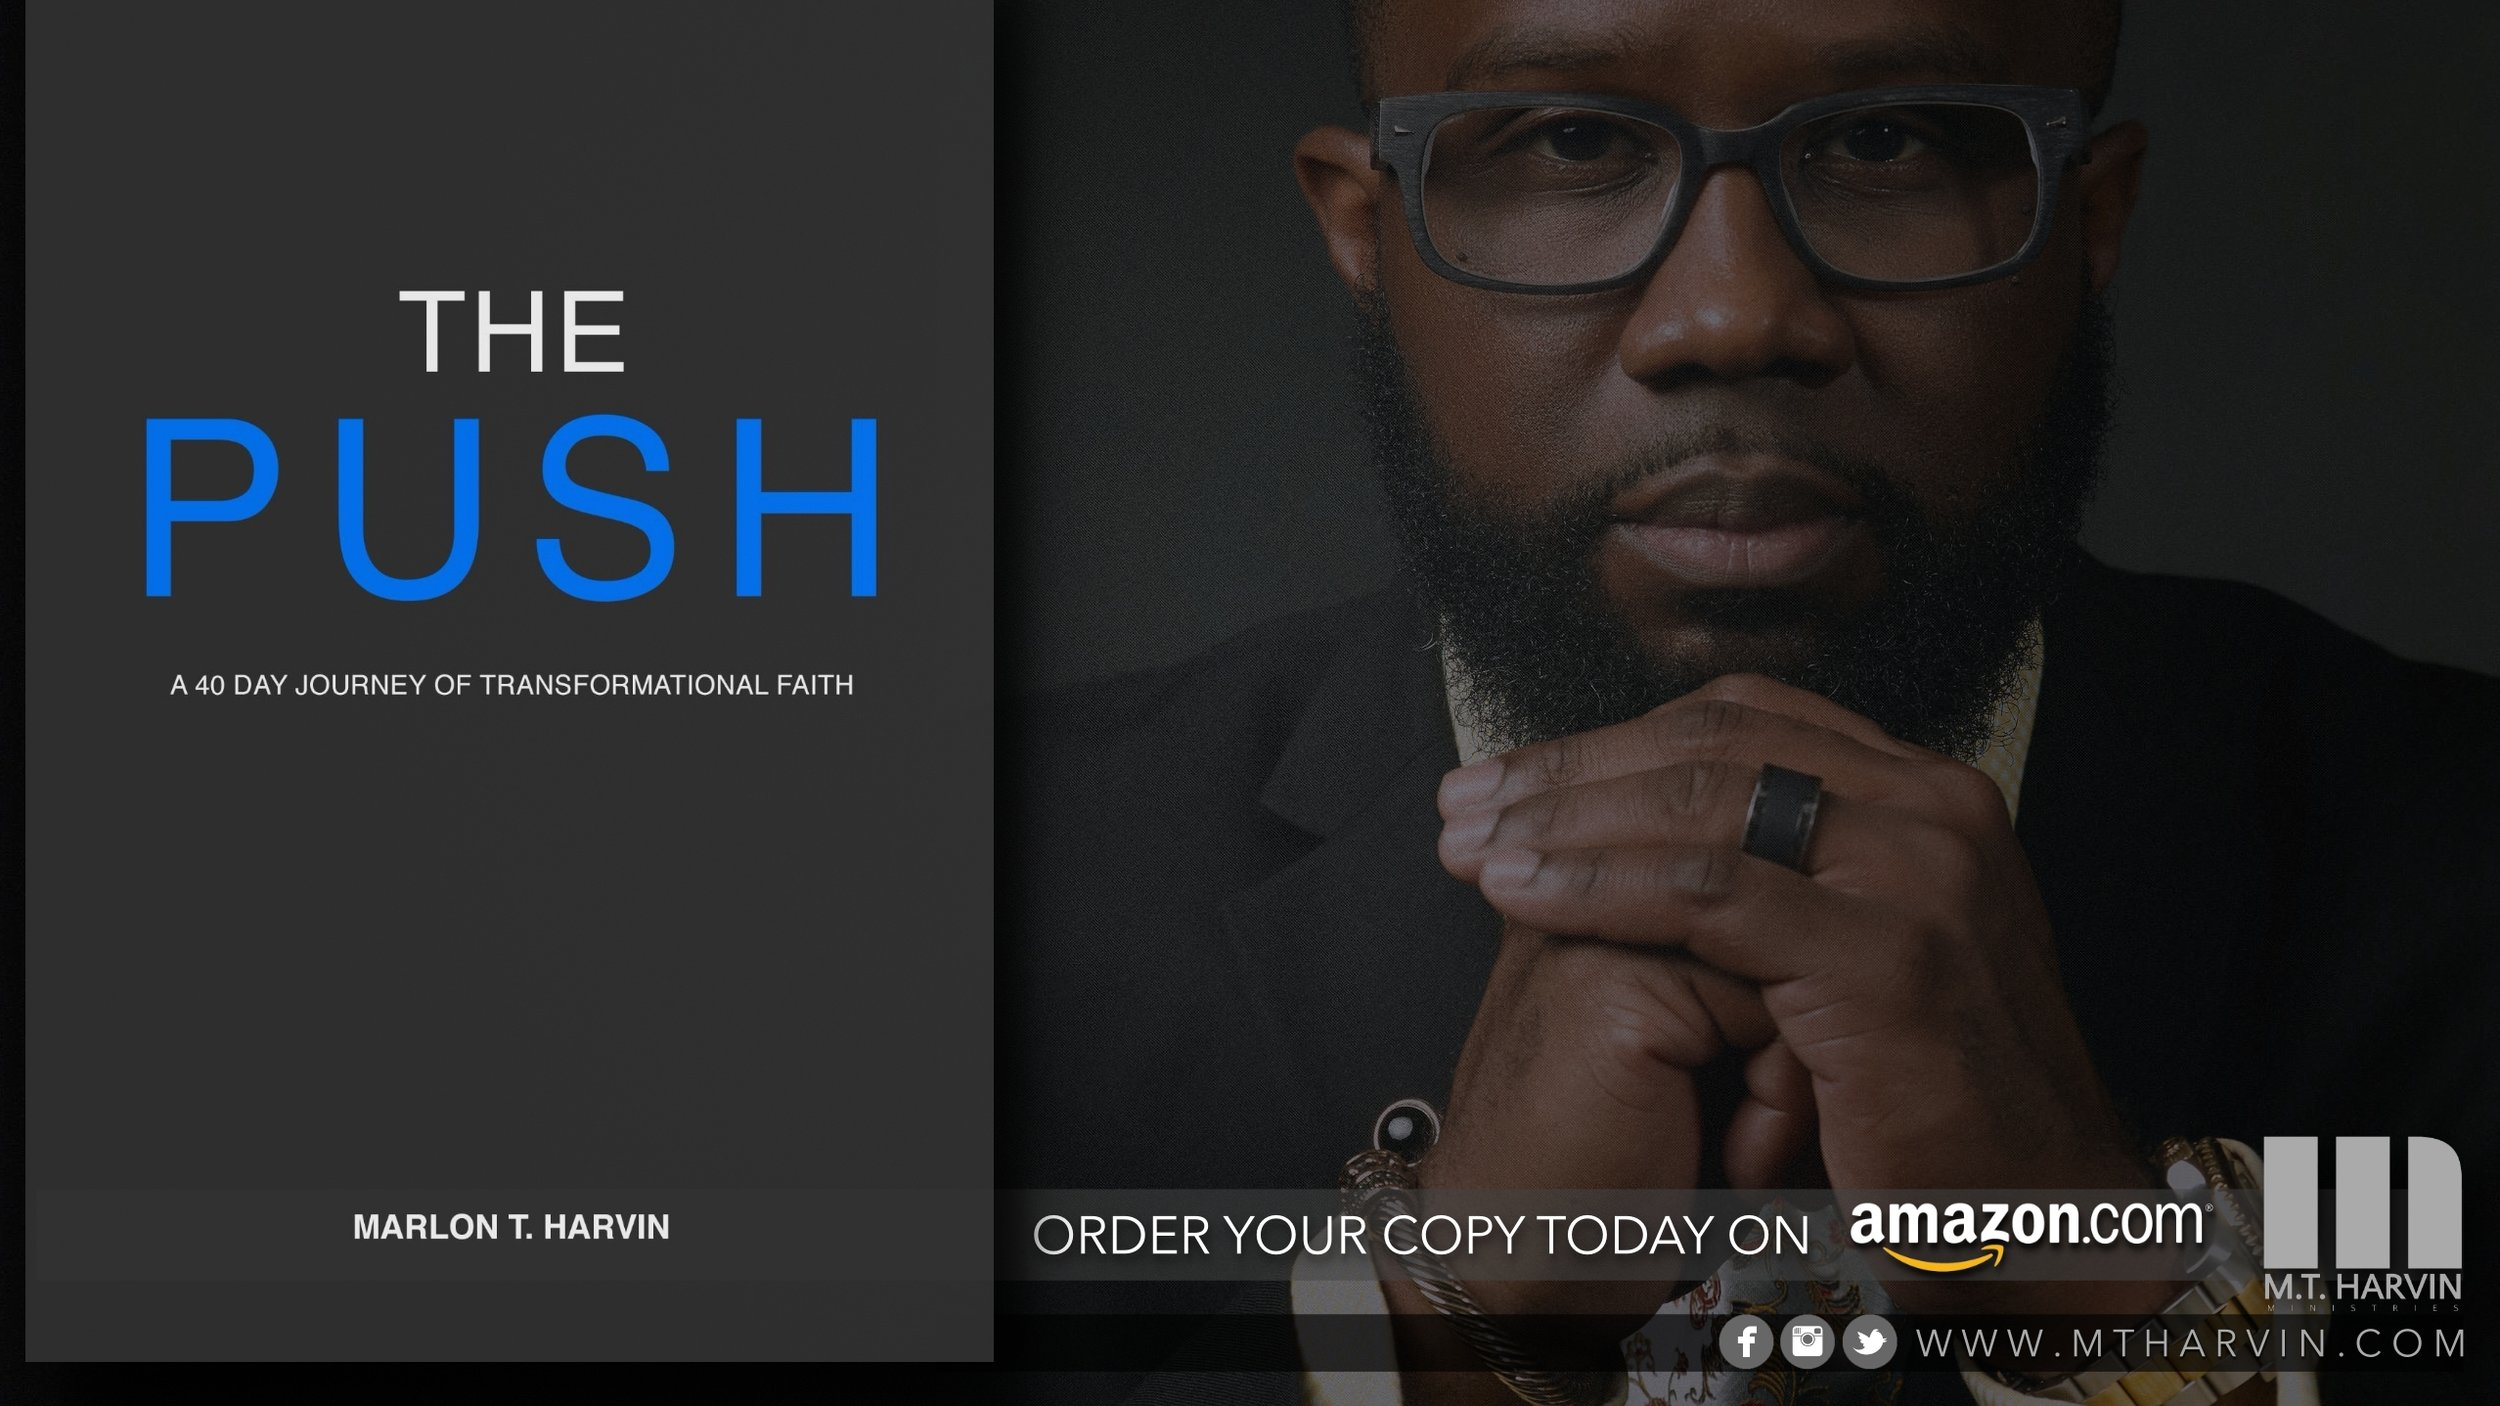 Purchase your copy of the new release book by M. T. Harvin entitled: THE PUSH on Amazon.com (link below)